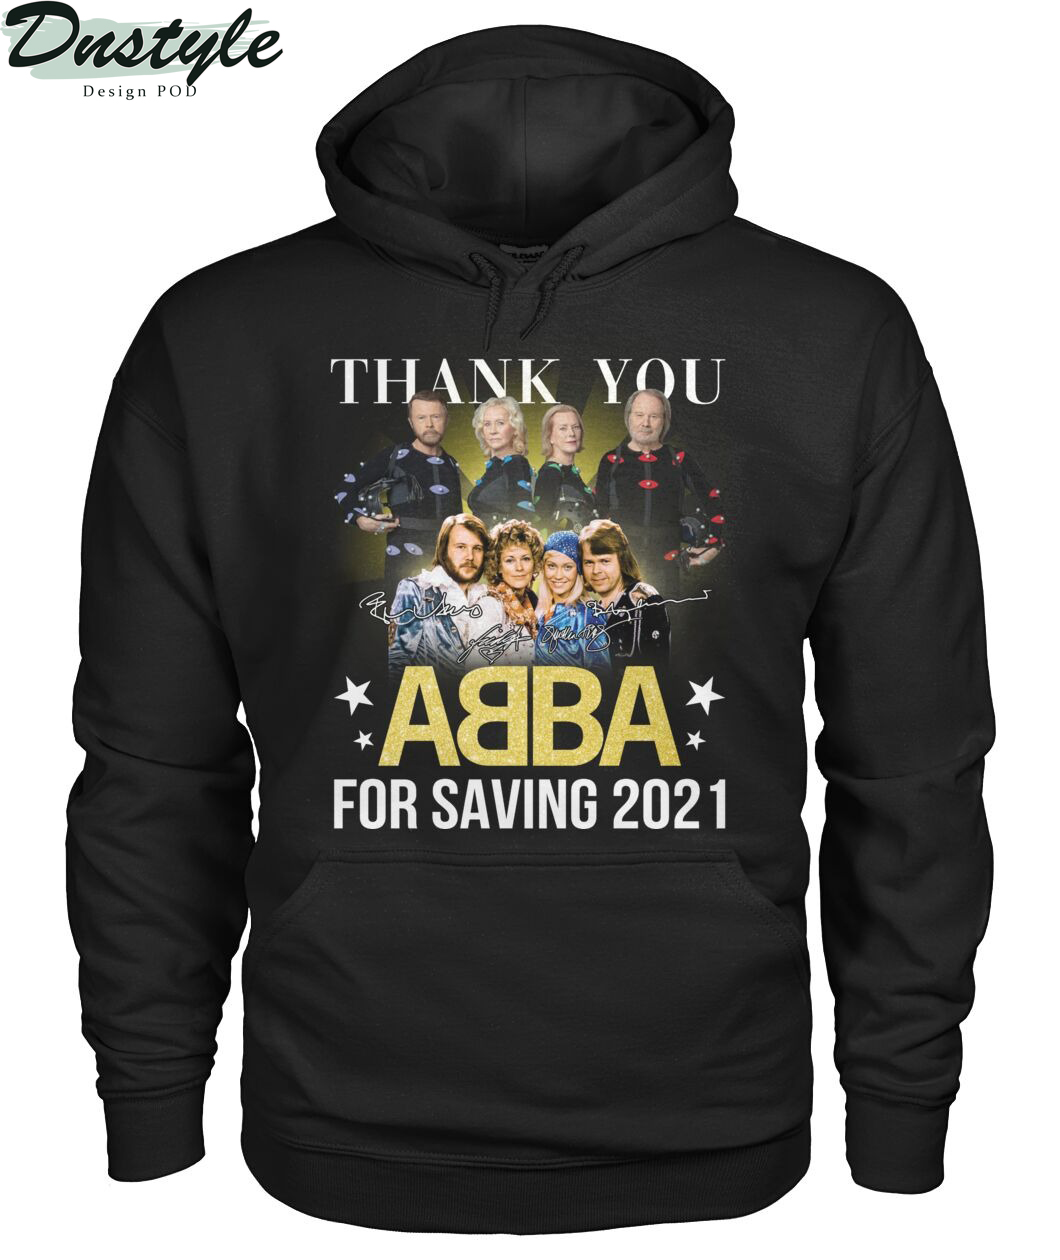 Thank you ABBA for saving 2021 hoodie